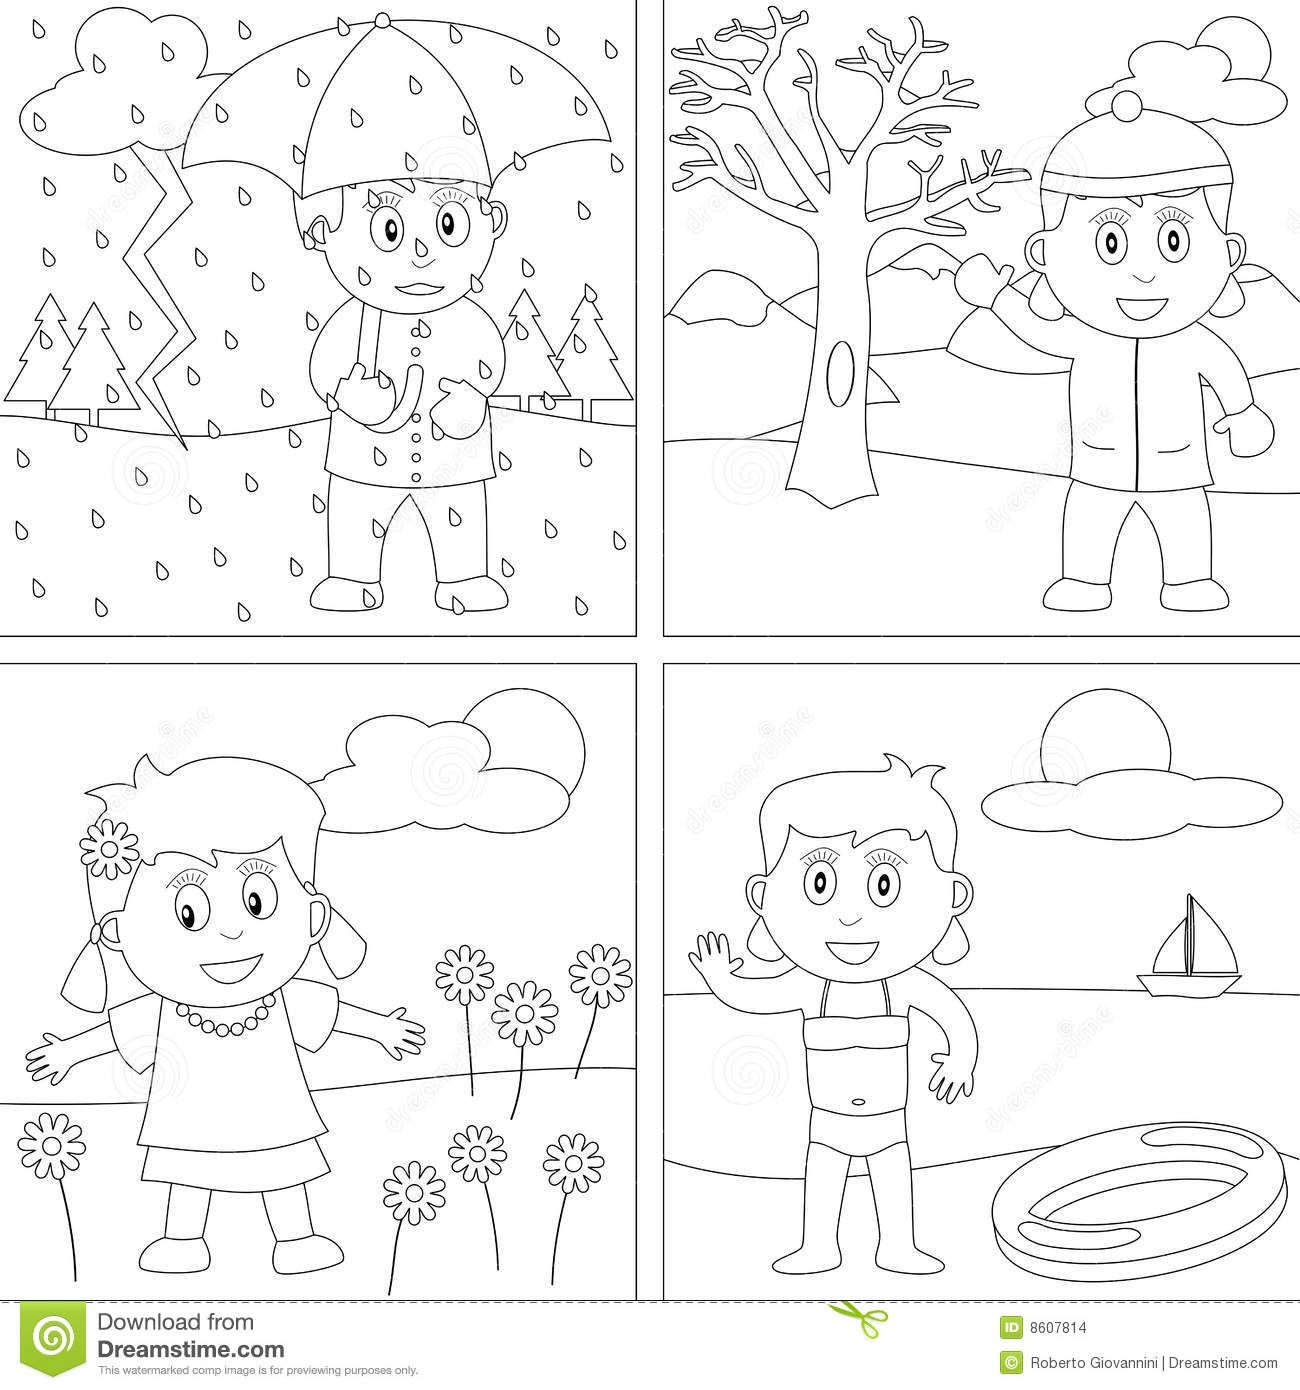 printable seasons coloring pictures with seasons coloring pages pinterest. Black Bedroom Furniture Sets. Home Design Ideas